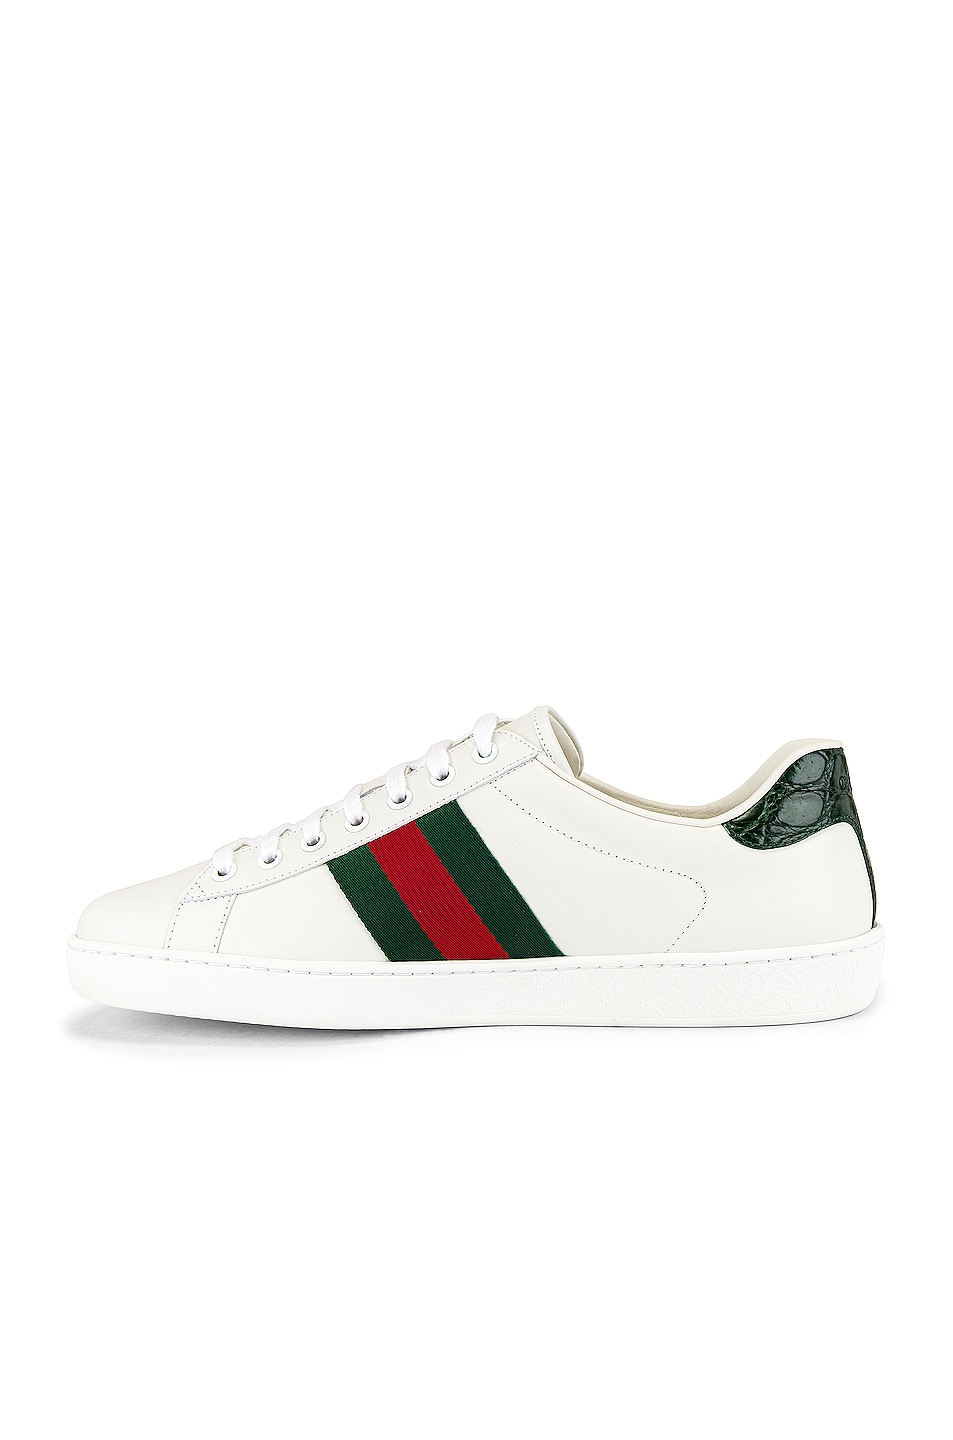 Image 5 of Gucci New Ace Sneaker in White & Red & Green